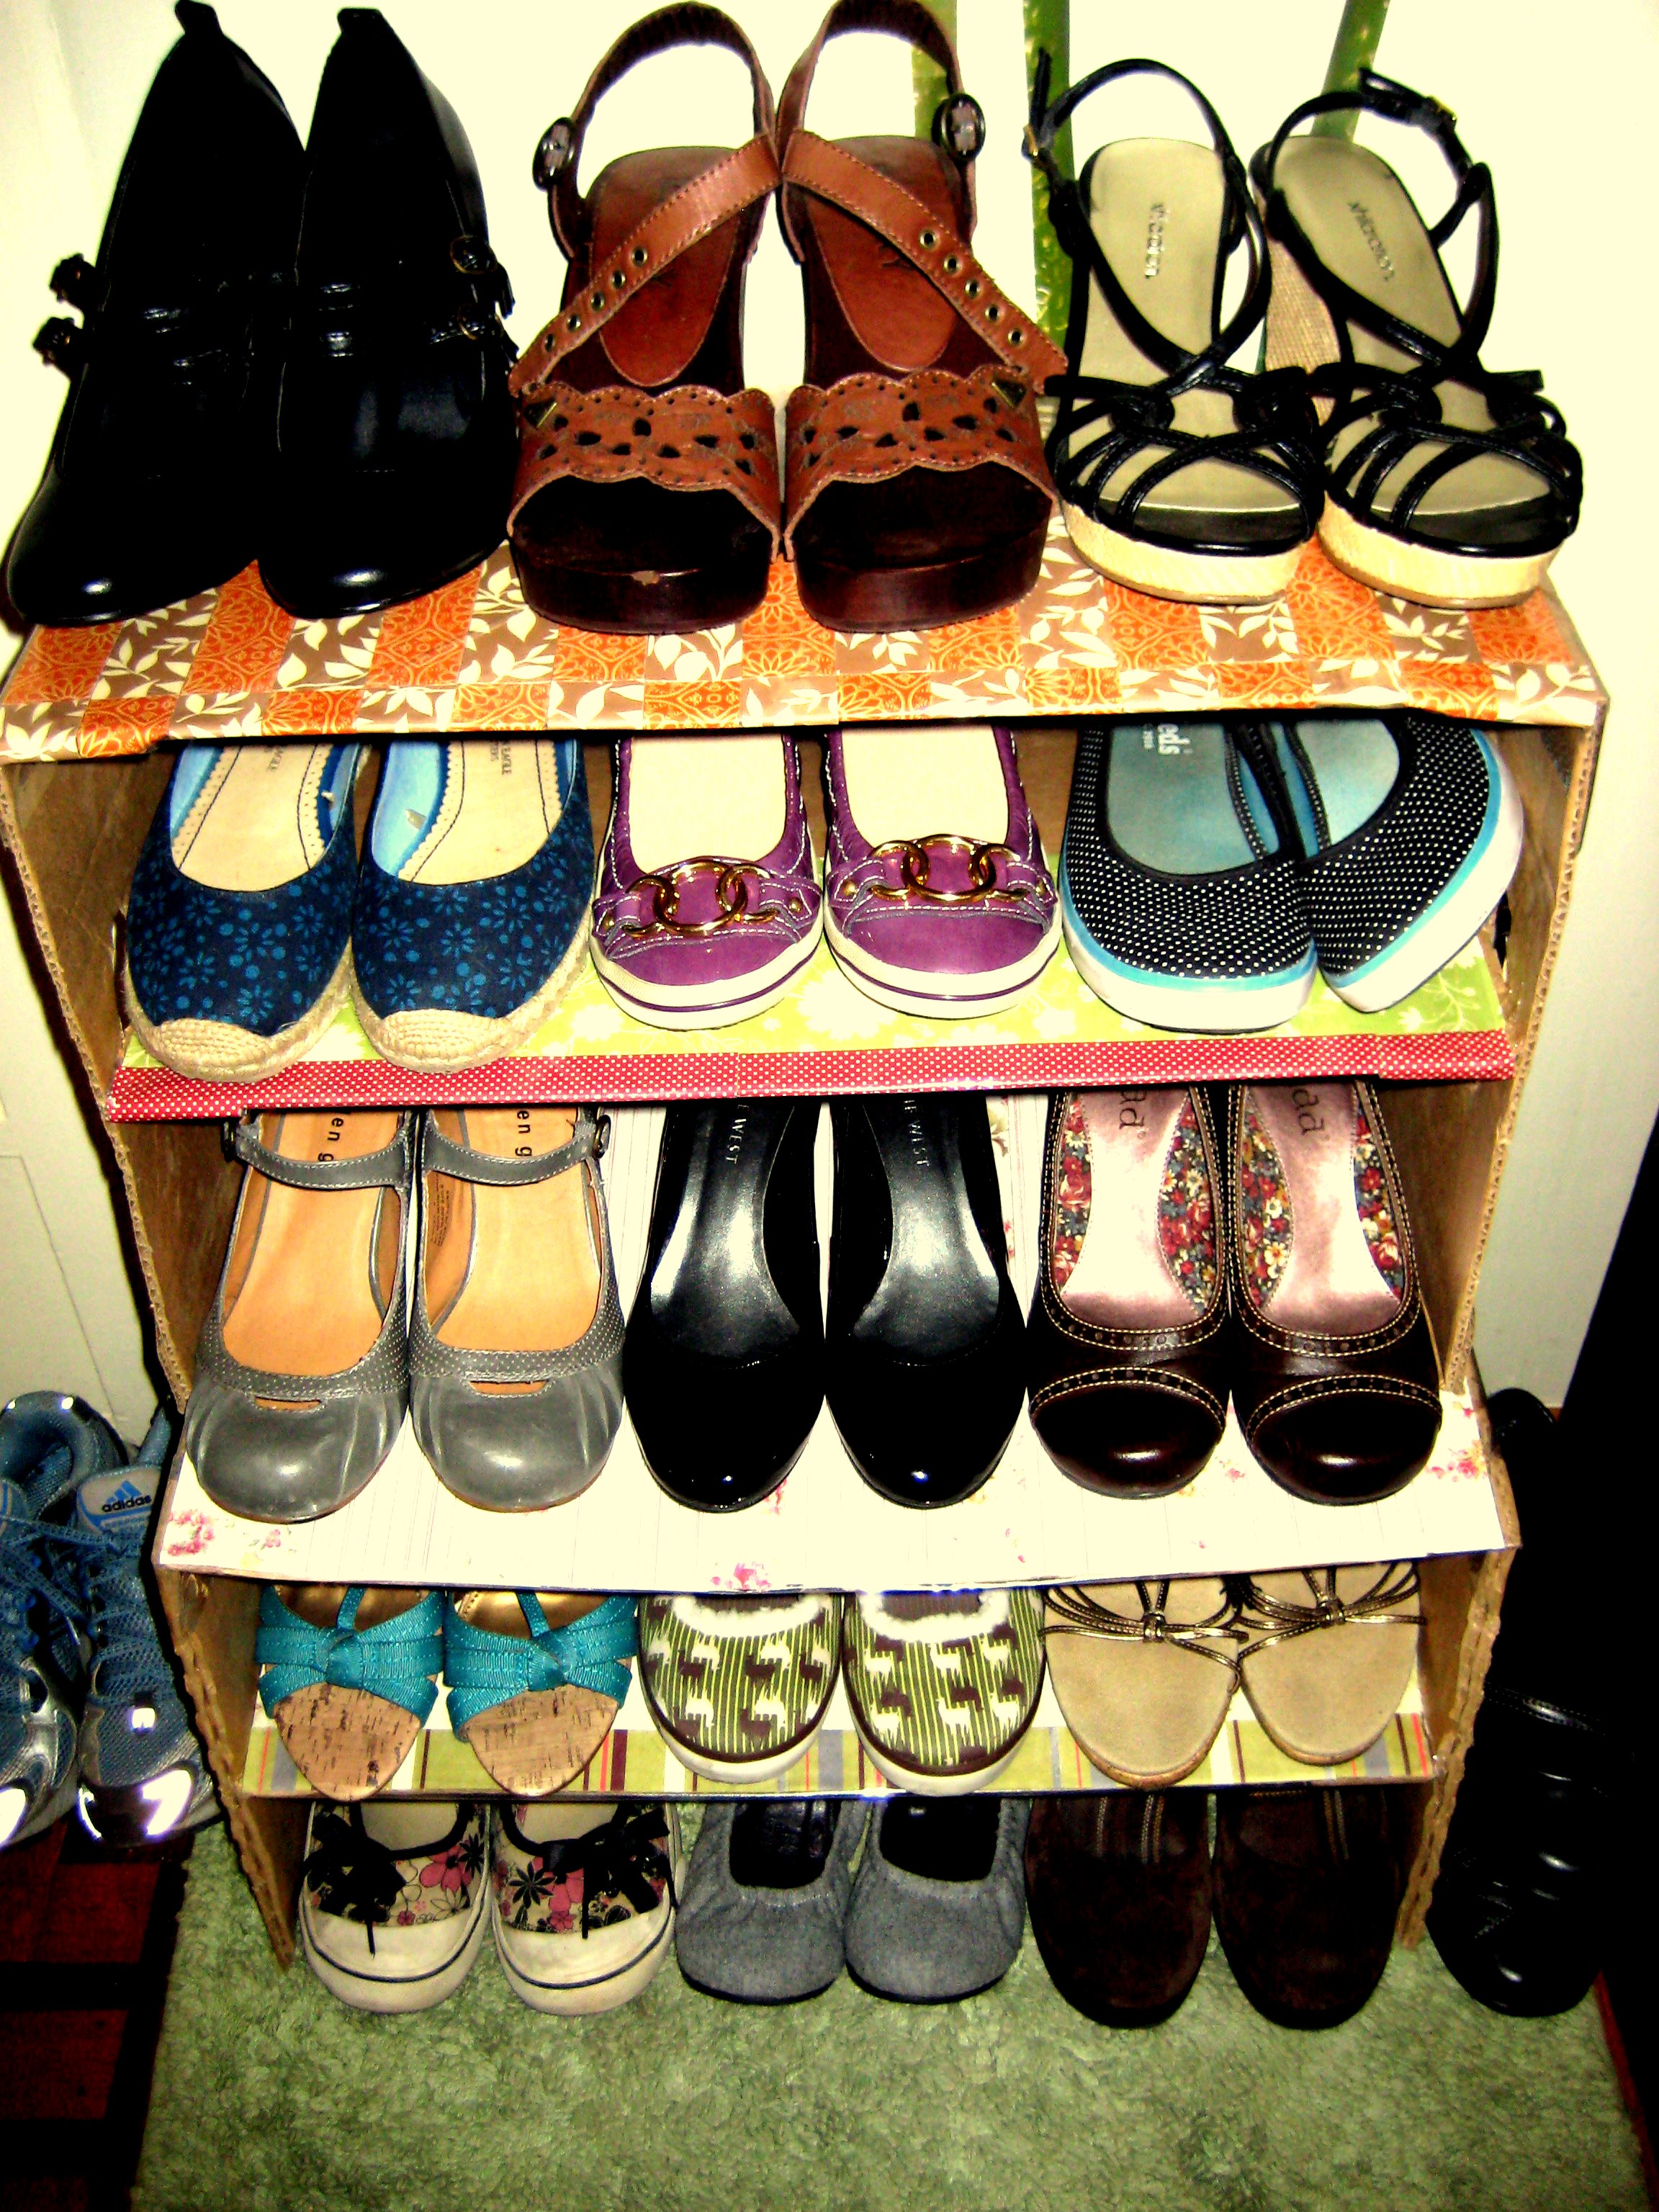 Picture of Organized Shelving = Room for More Shoes!